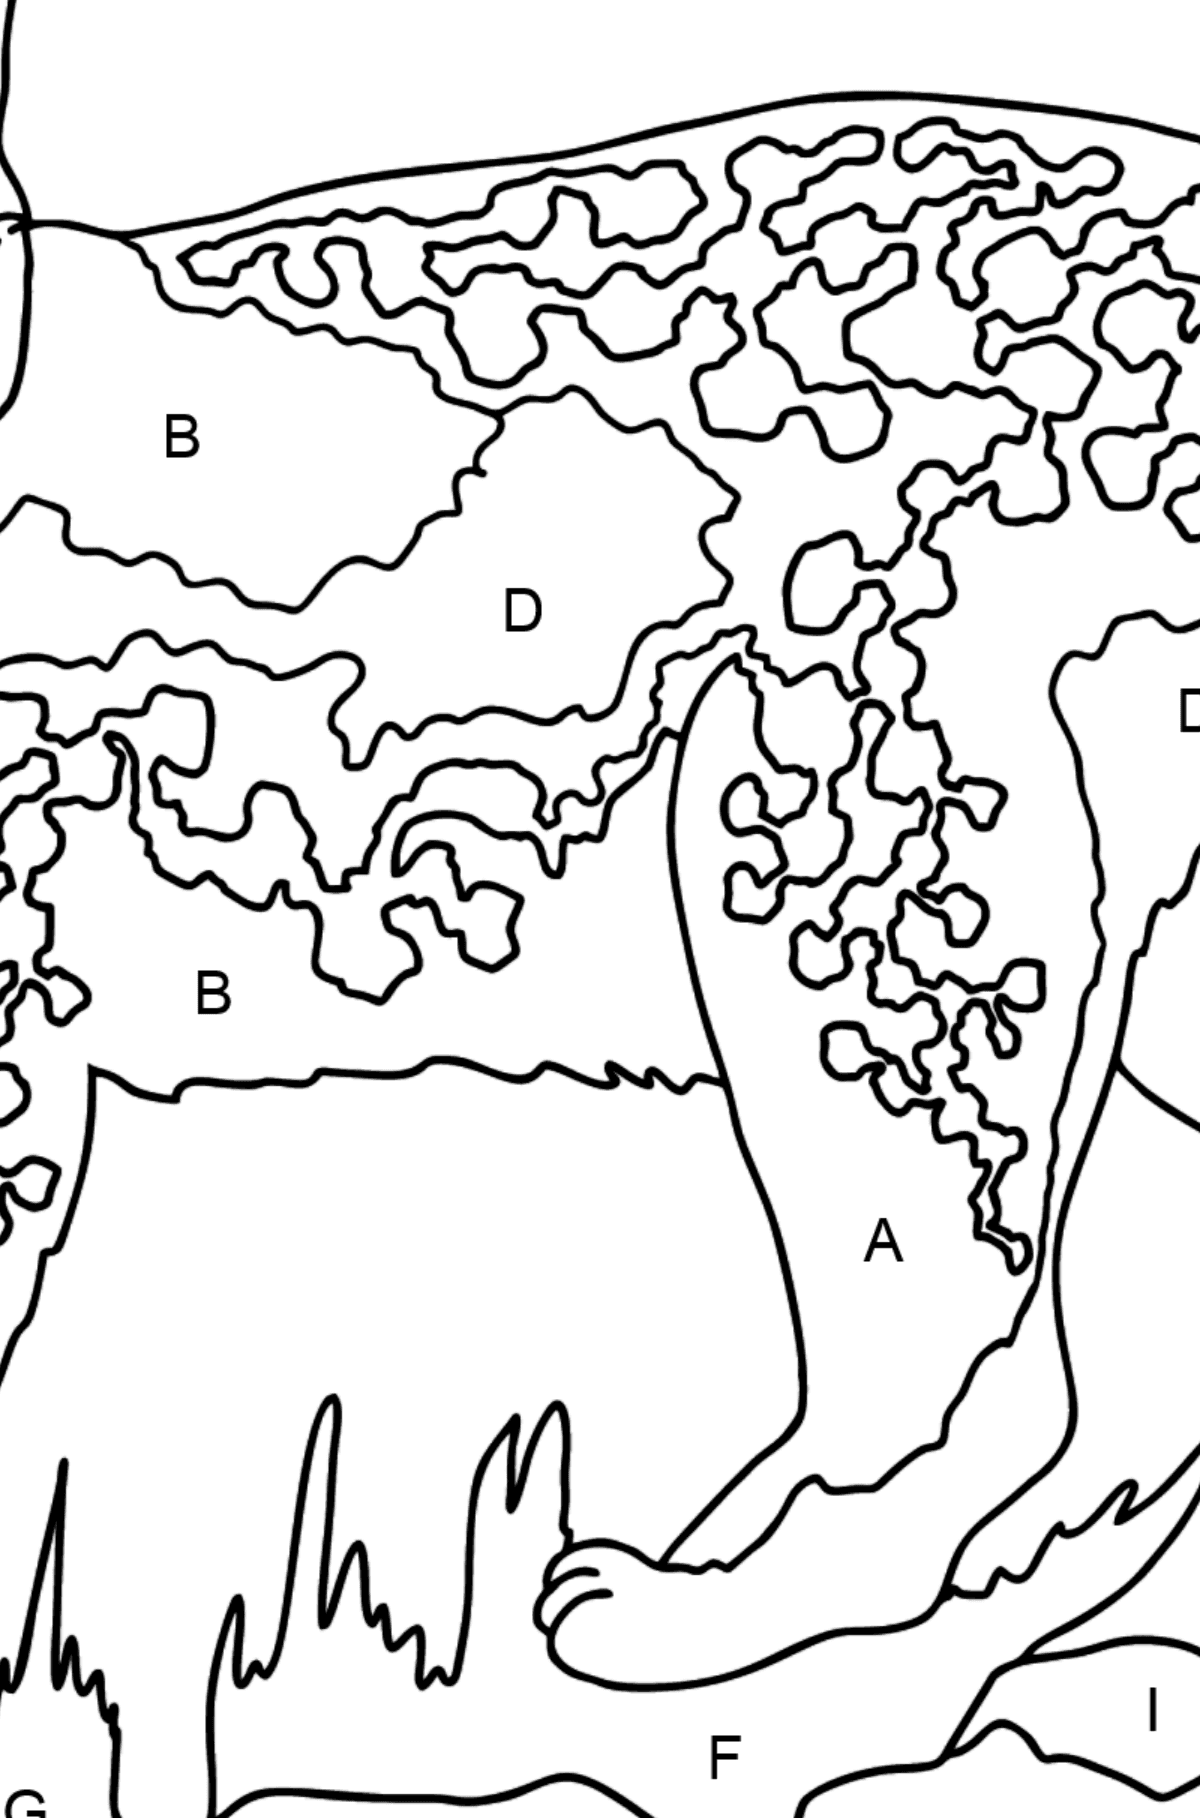 Coloring Page - A Wild Lynx - Coloring by Letters for Kids